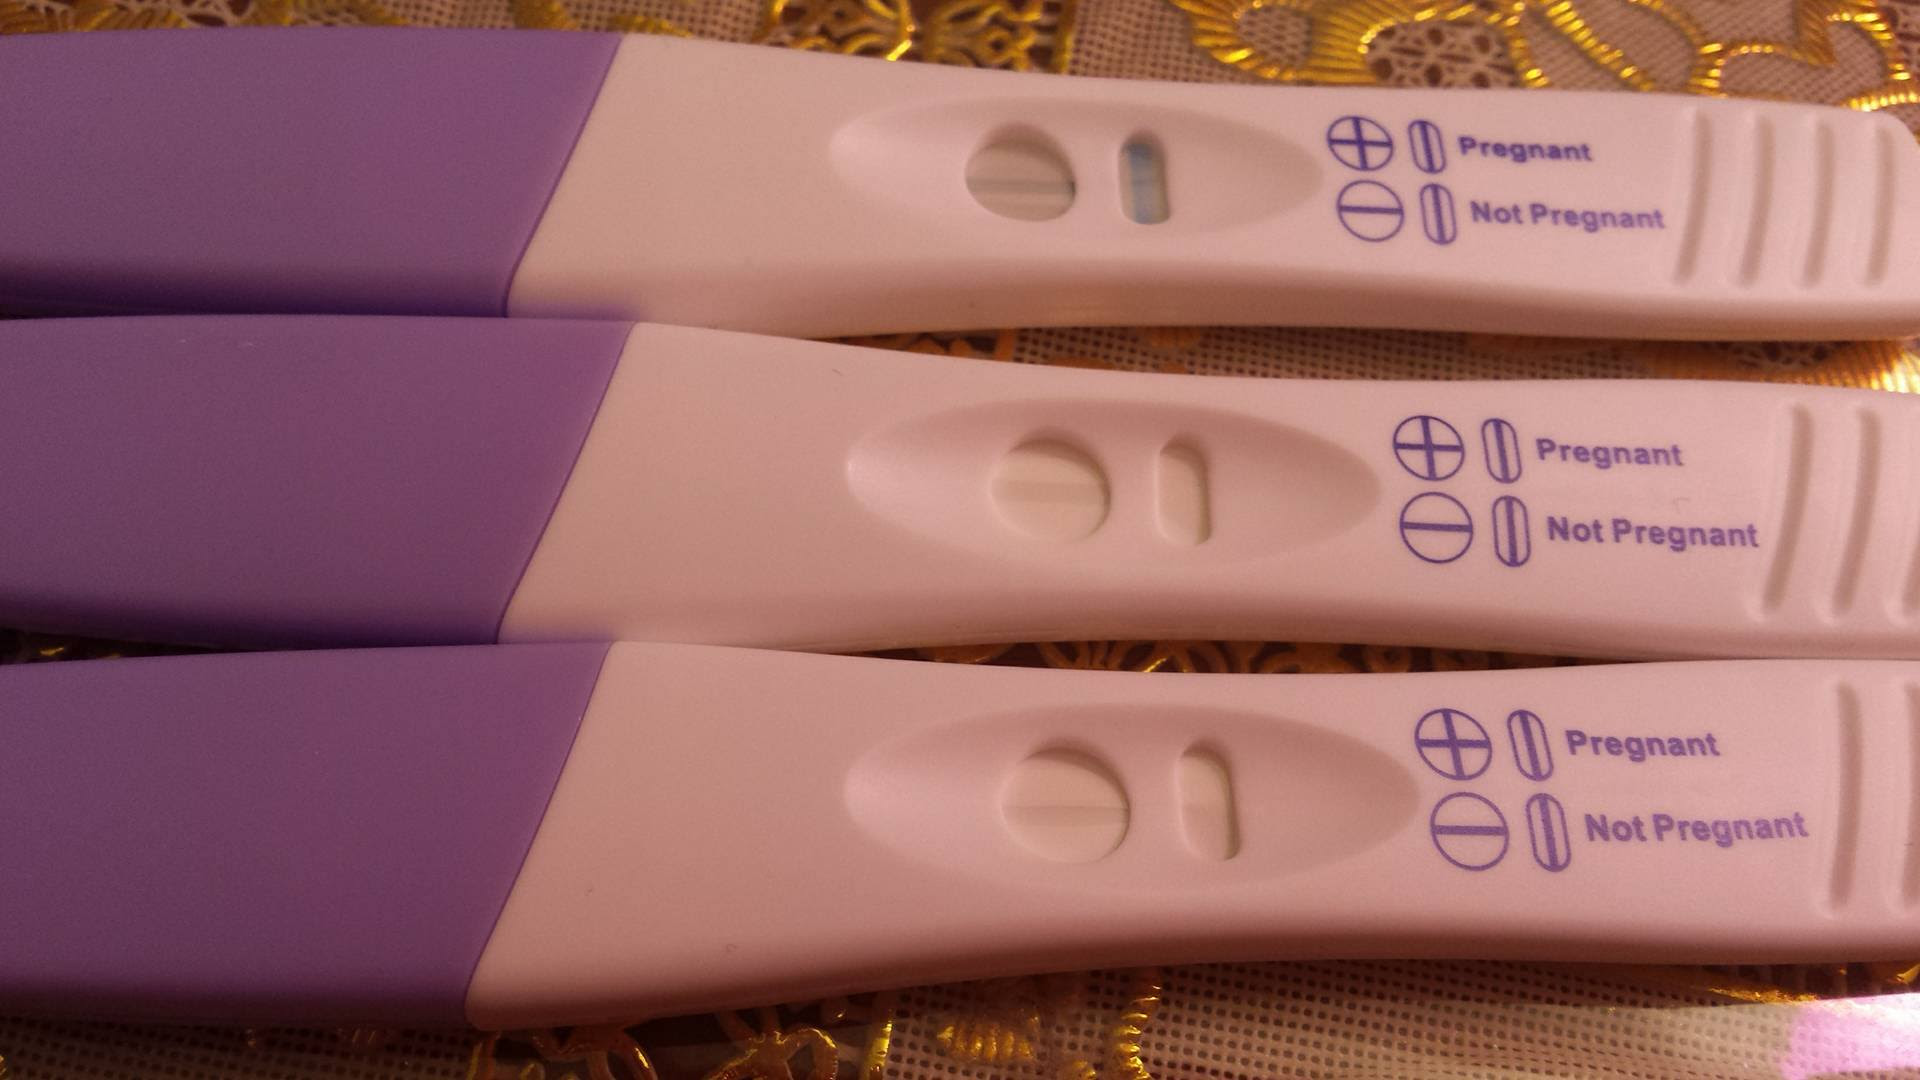 Cvs Brand Pregnancy Test False Negative - Pregnancy Symptoms